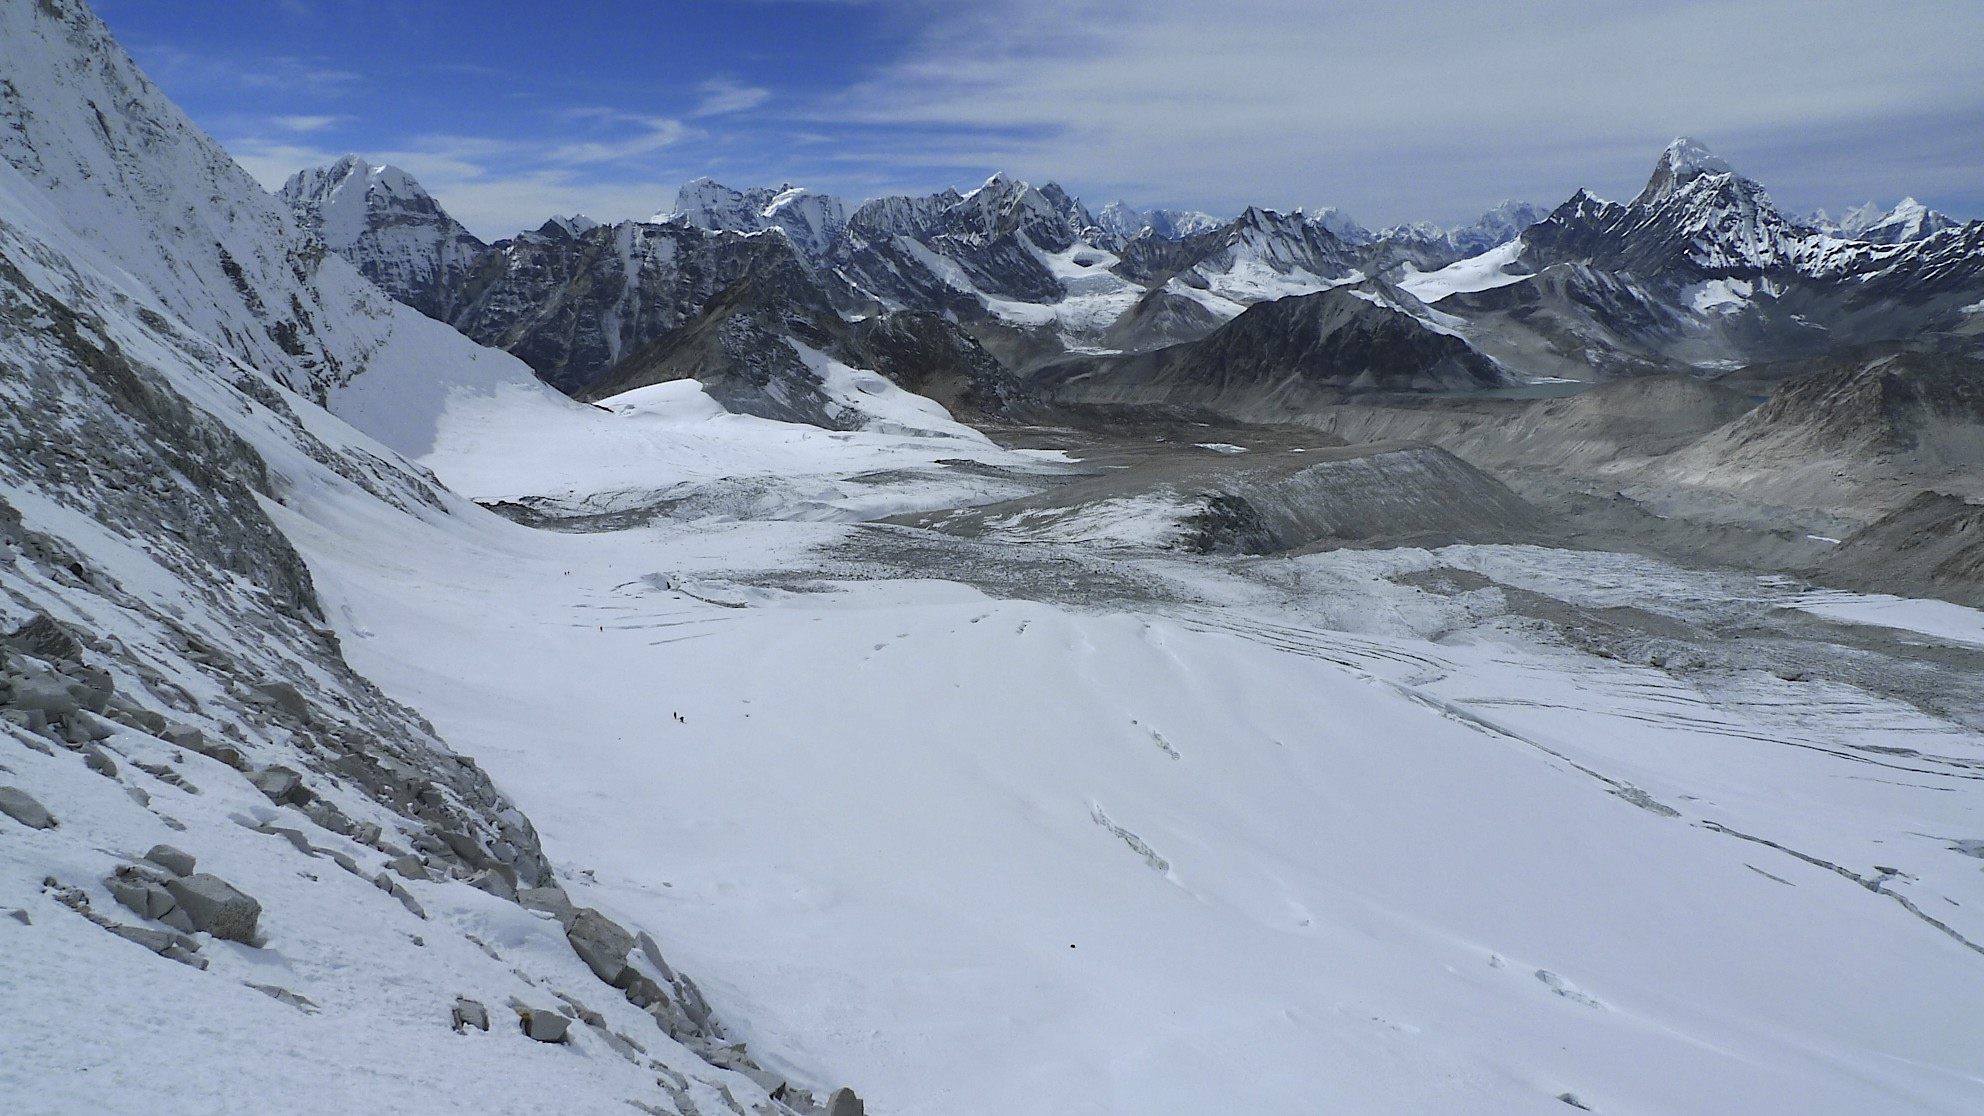 Descending from the West Col. Hinku Valley is below.